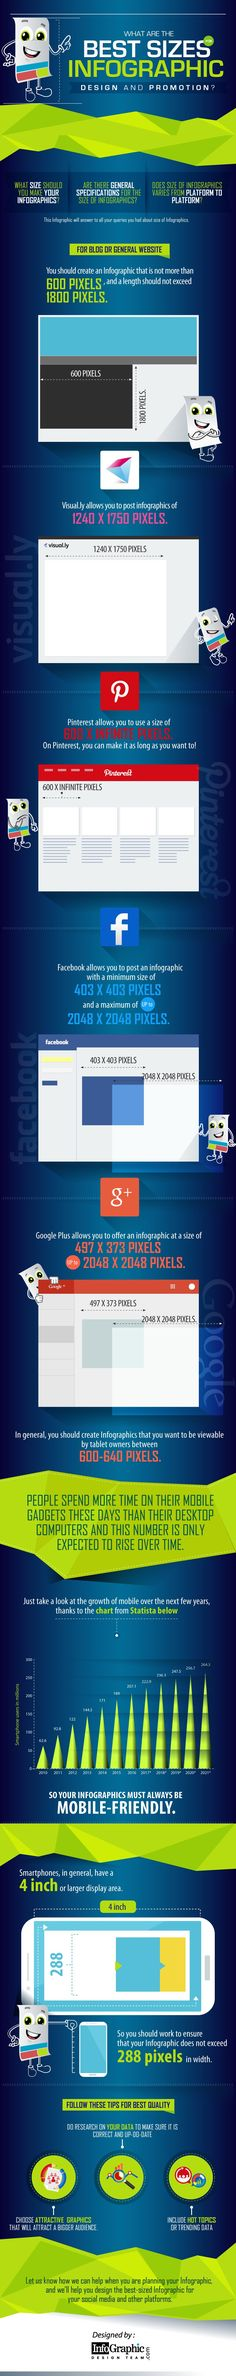 What Are the Best Sizes for Infographic Designs? - #Infographic